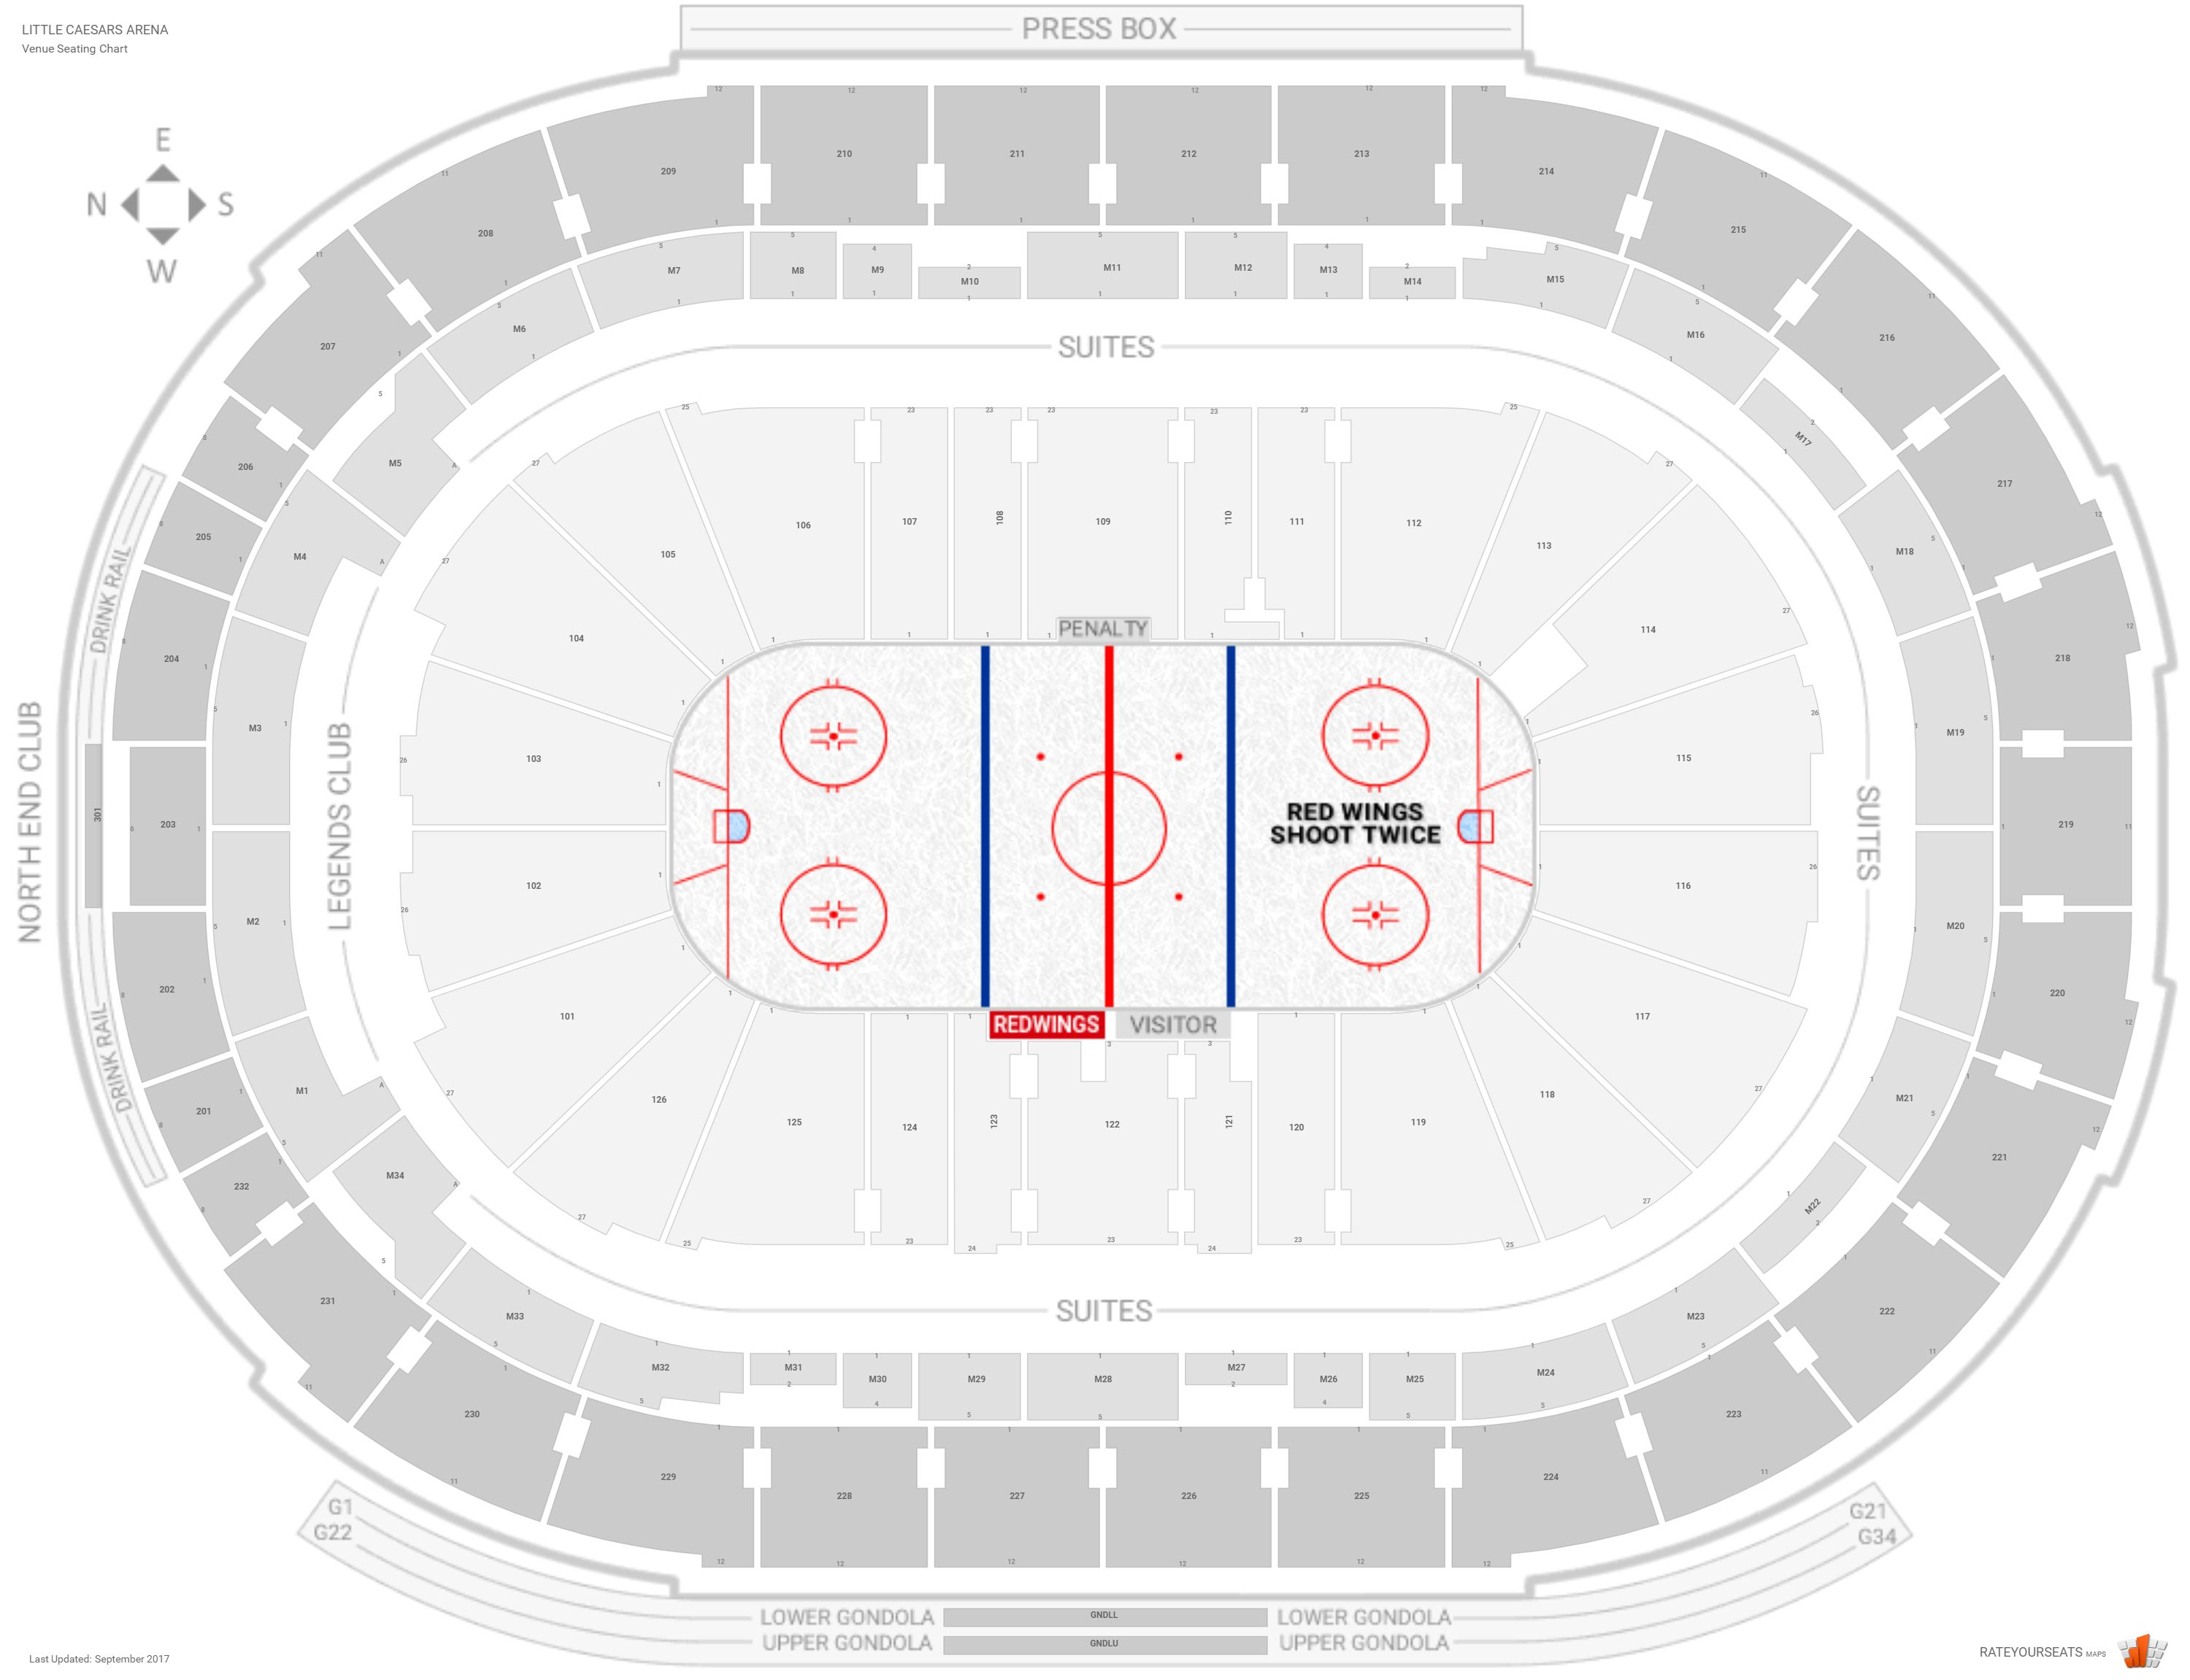 Little Caesars Arena Seating Chart With Row Numbers